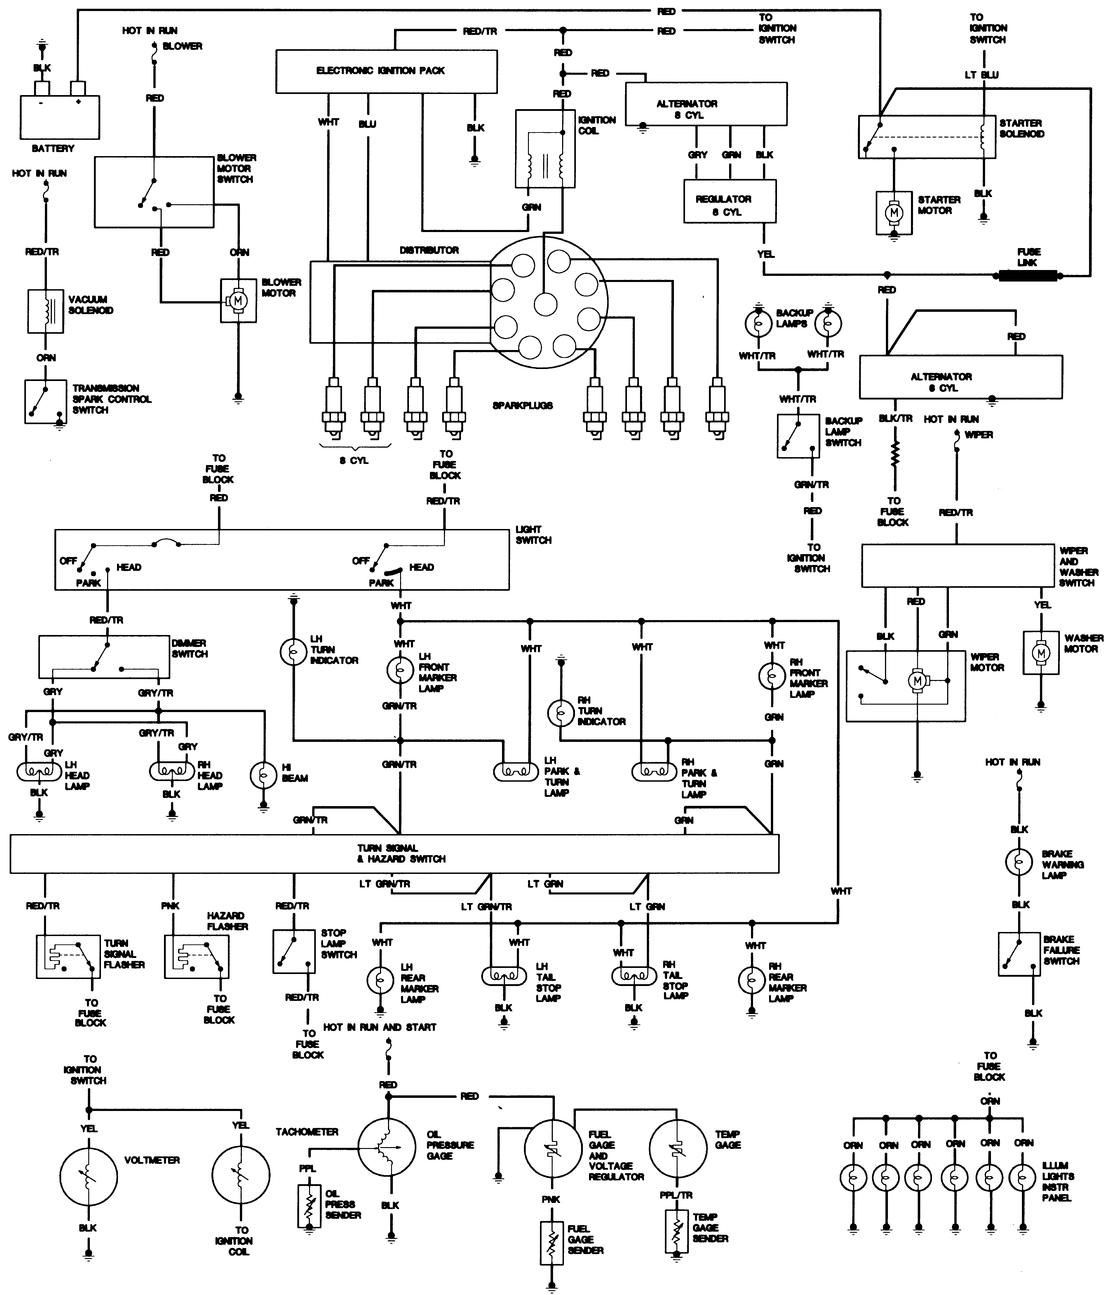 wiring diagram 1980 cj7 jeep  u2013 the wiring diagram